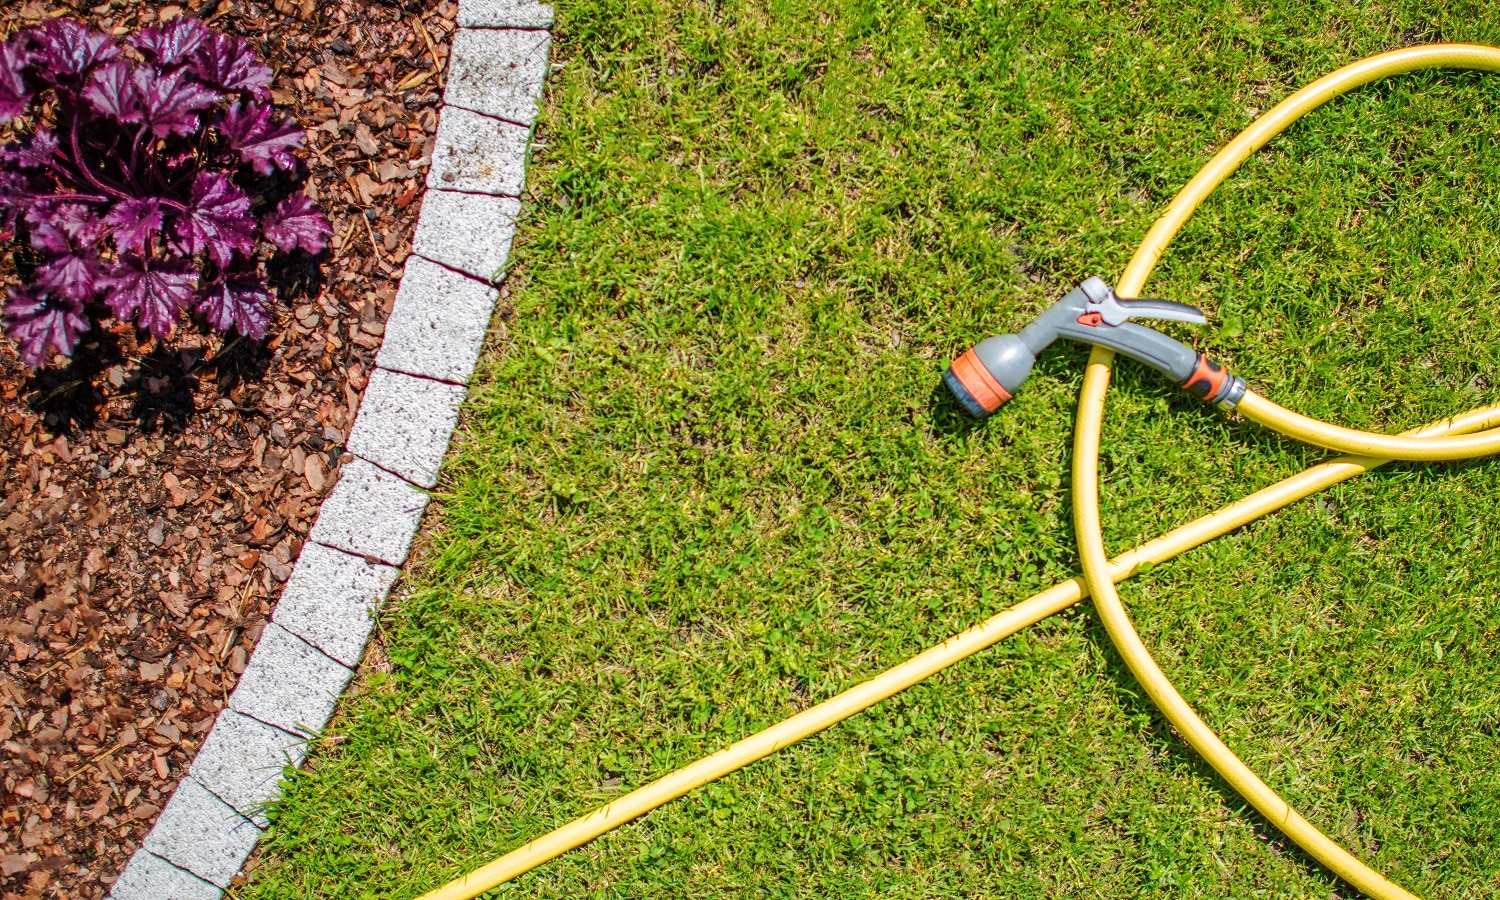 Garden Water Hose with Watering Head. Watering Garden Plants Concept Photo.